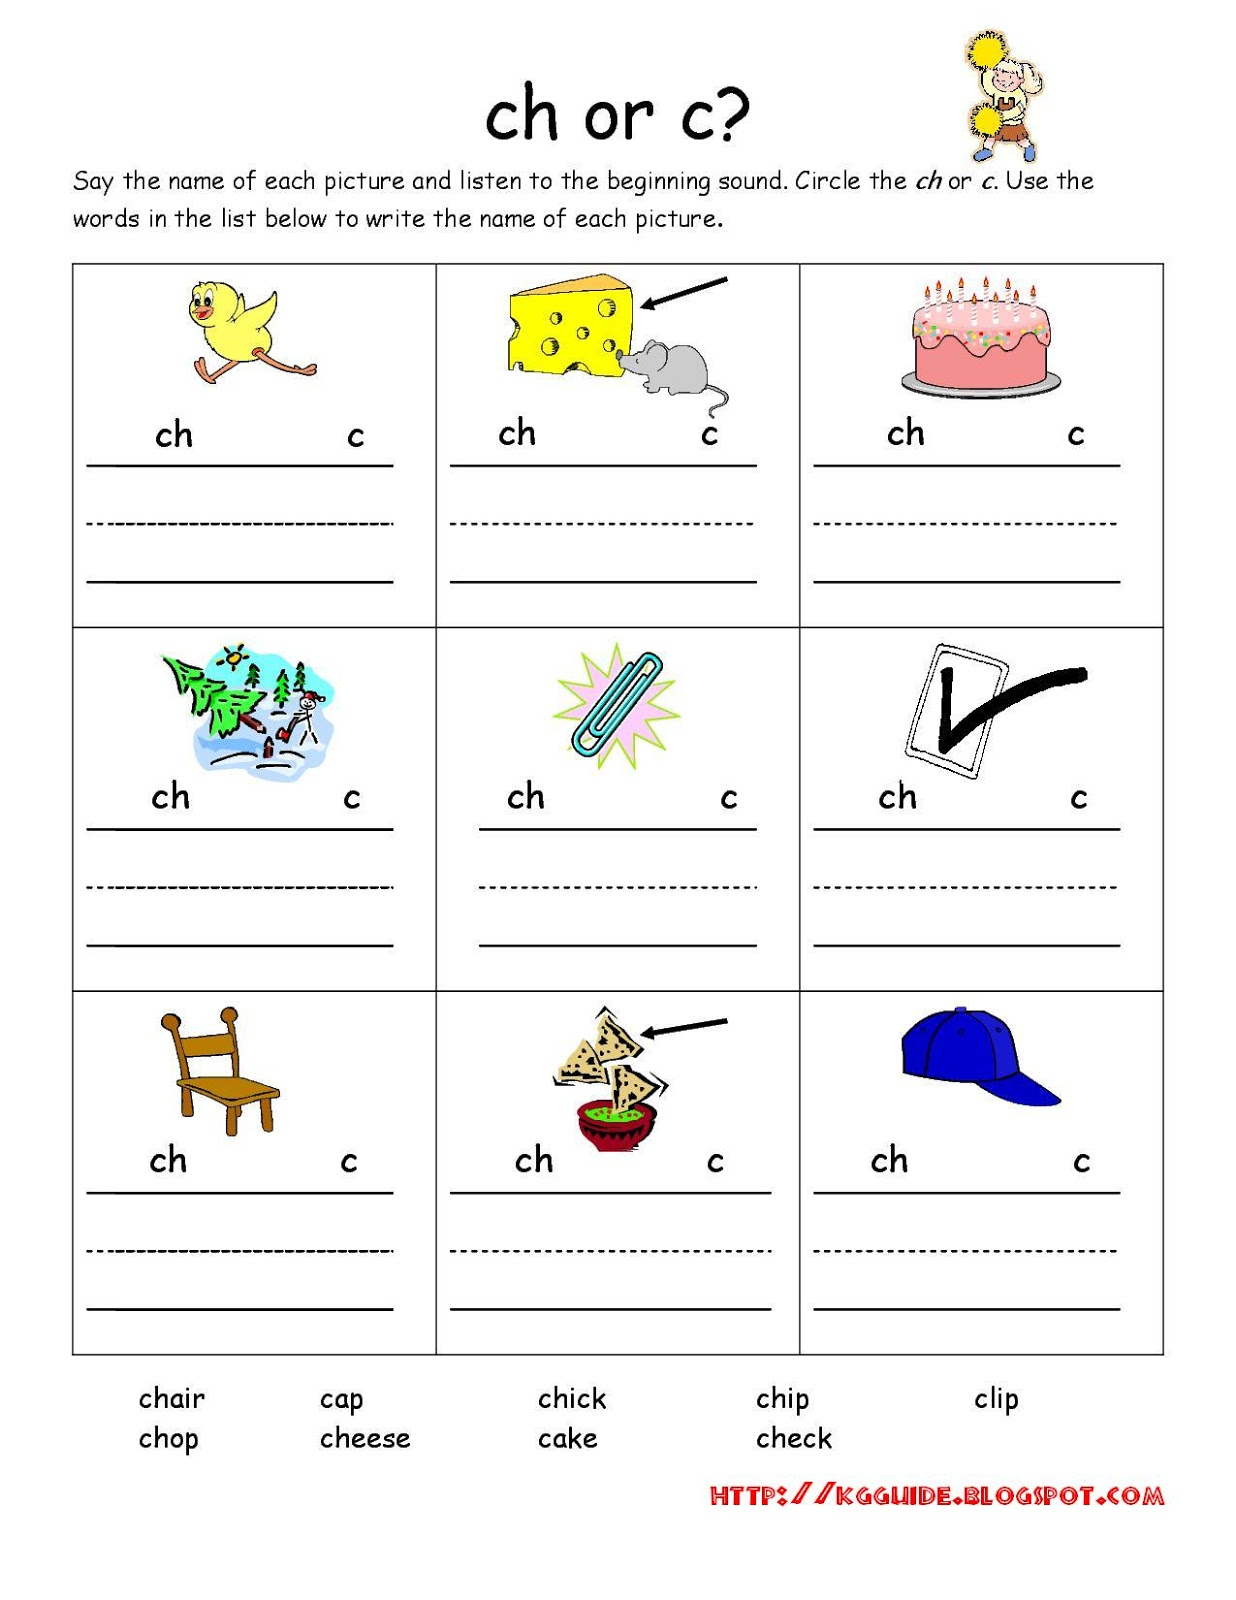 worksheet Ch Worksheet ch words worksheet for kindergarten students students